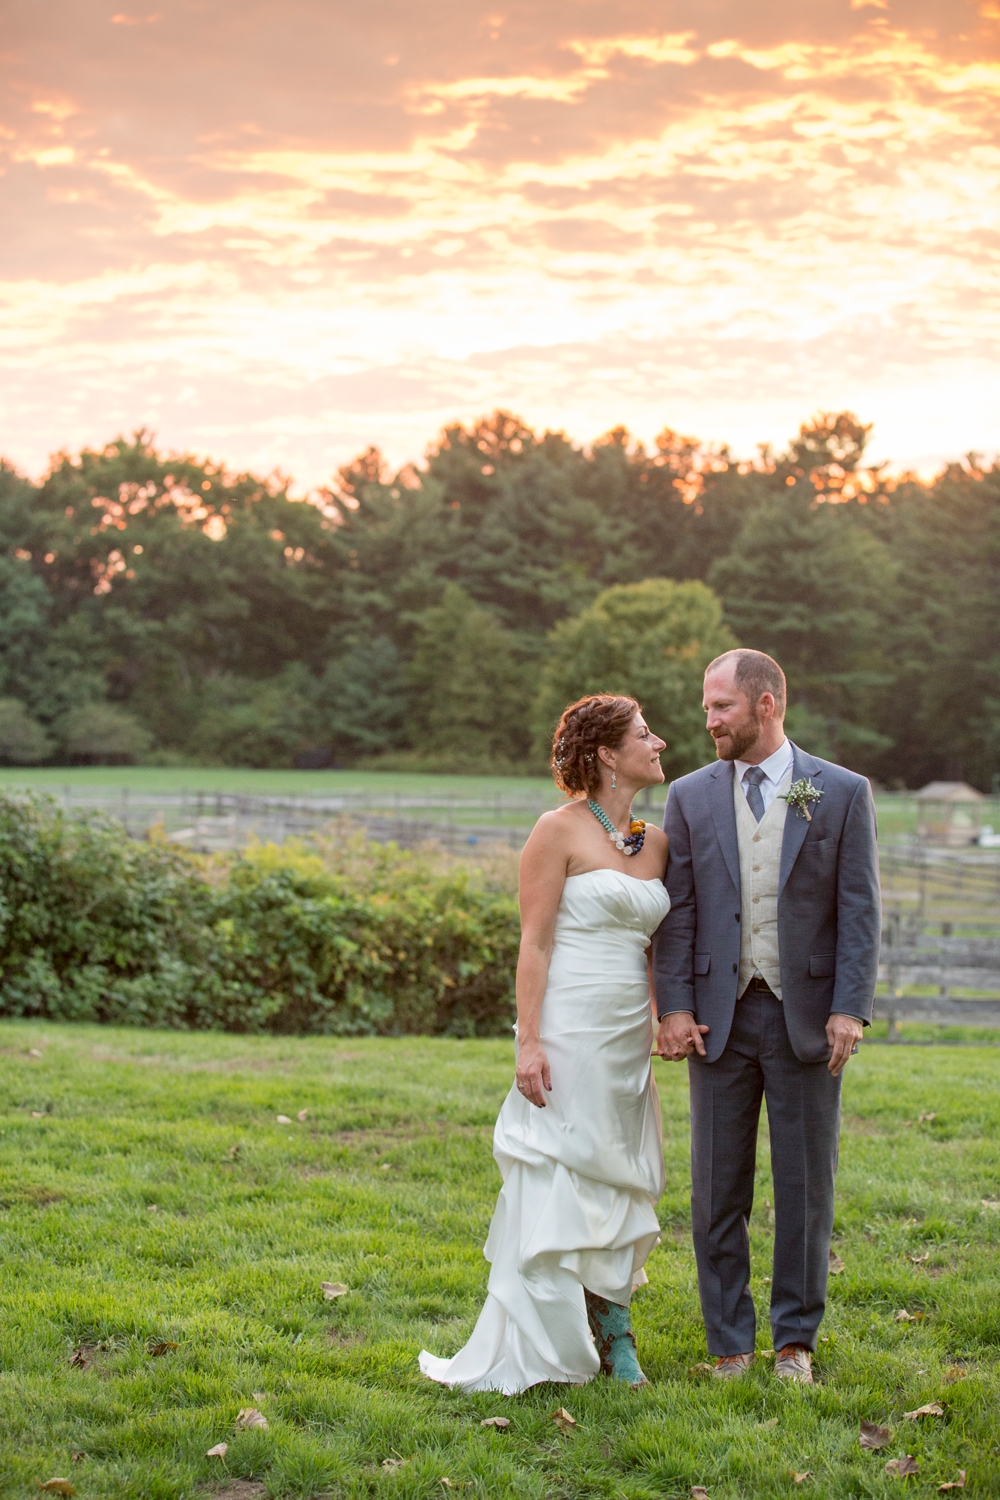 BearSpotFarm_Wedding_Nikki&Alex_0014.jpg